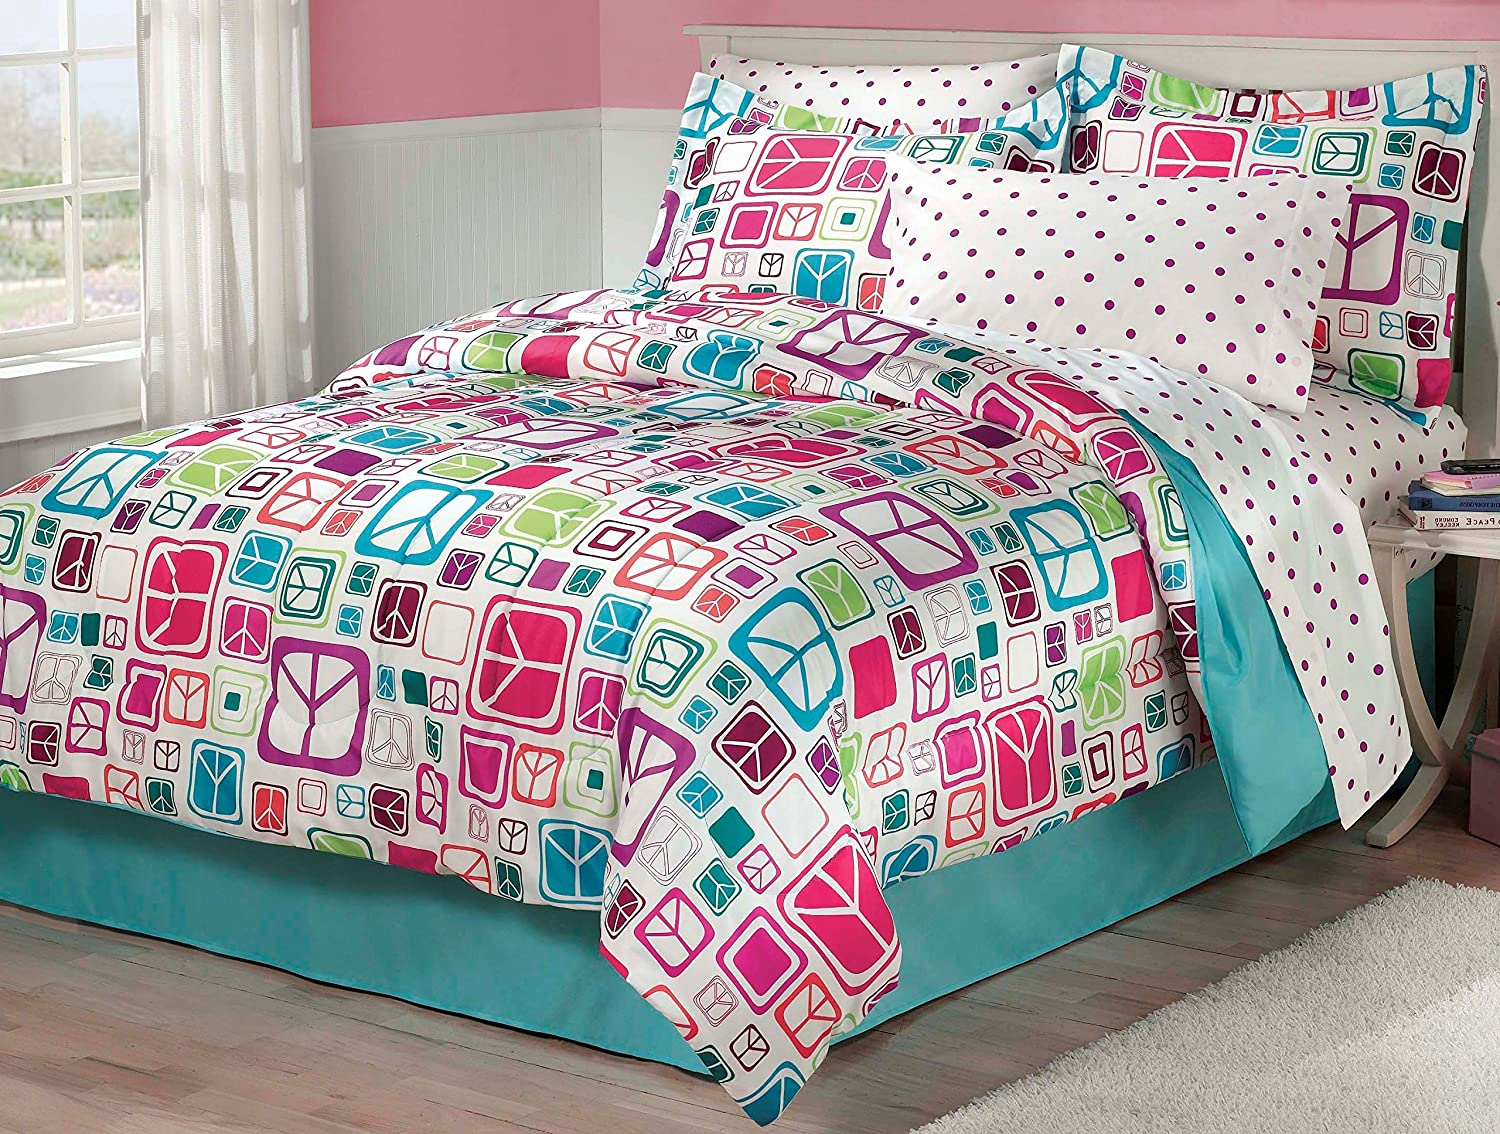 My Room Peace Out Girls Comforter Set With Bedskirt, Teal